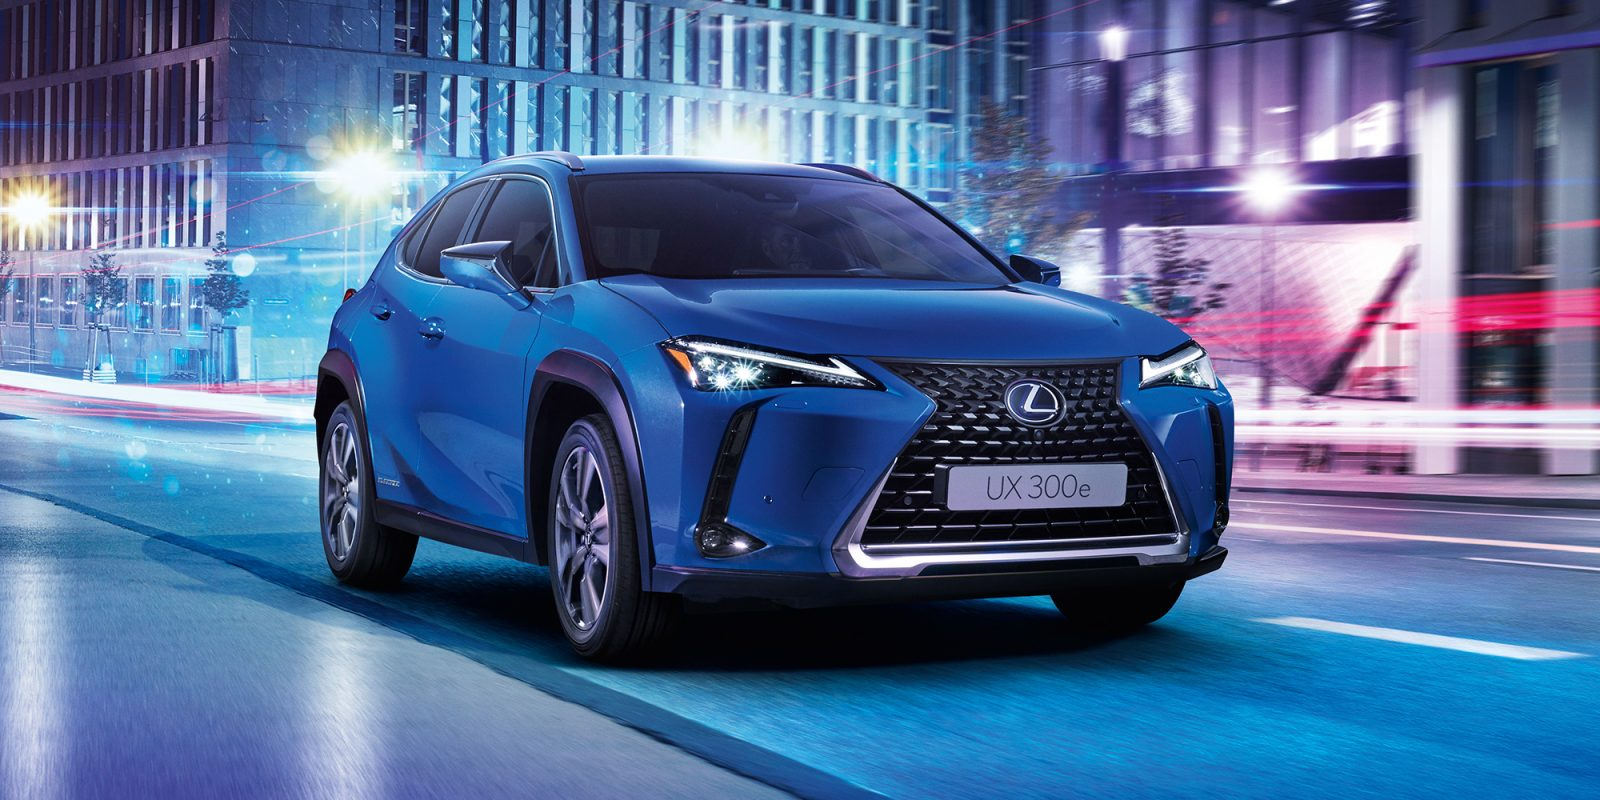 Lexus launches electric SUV for Asia and Europe, showing that Toyota can quickly shift to EVs